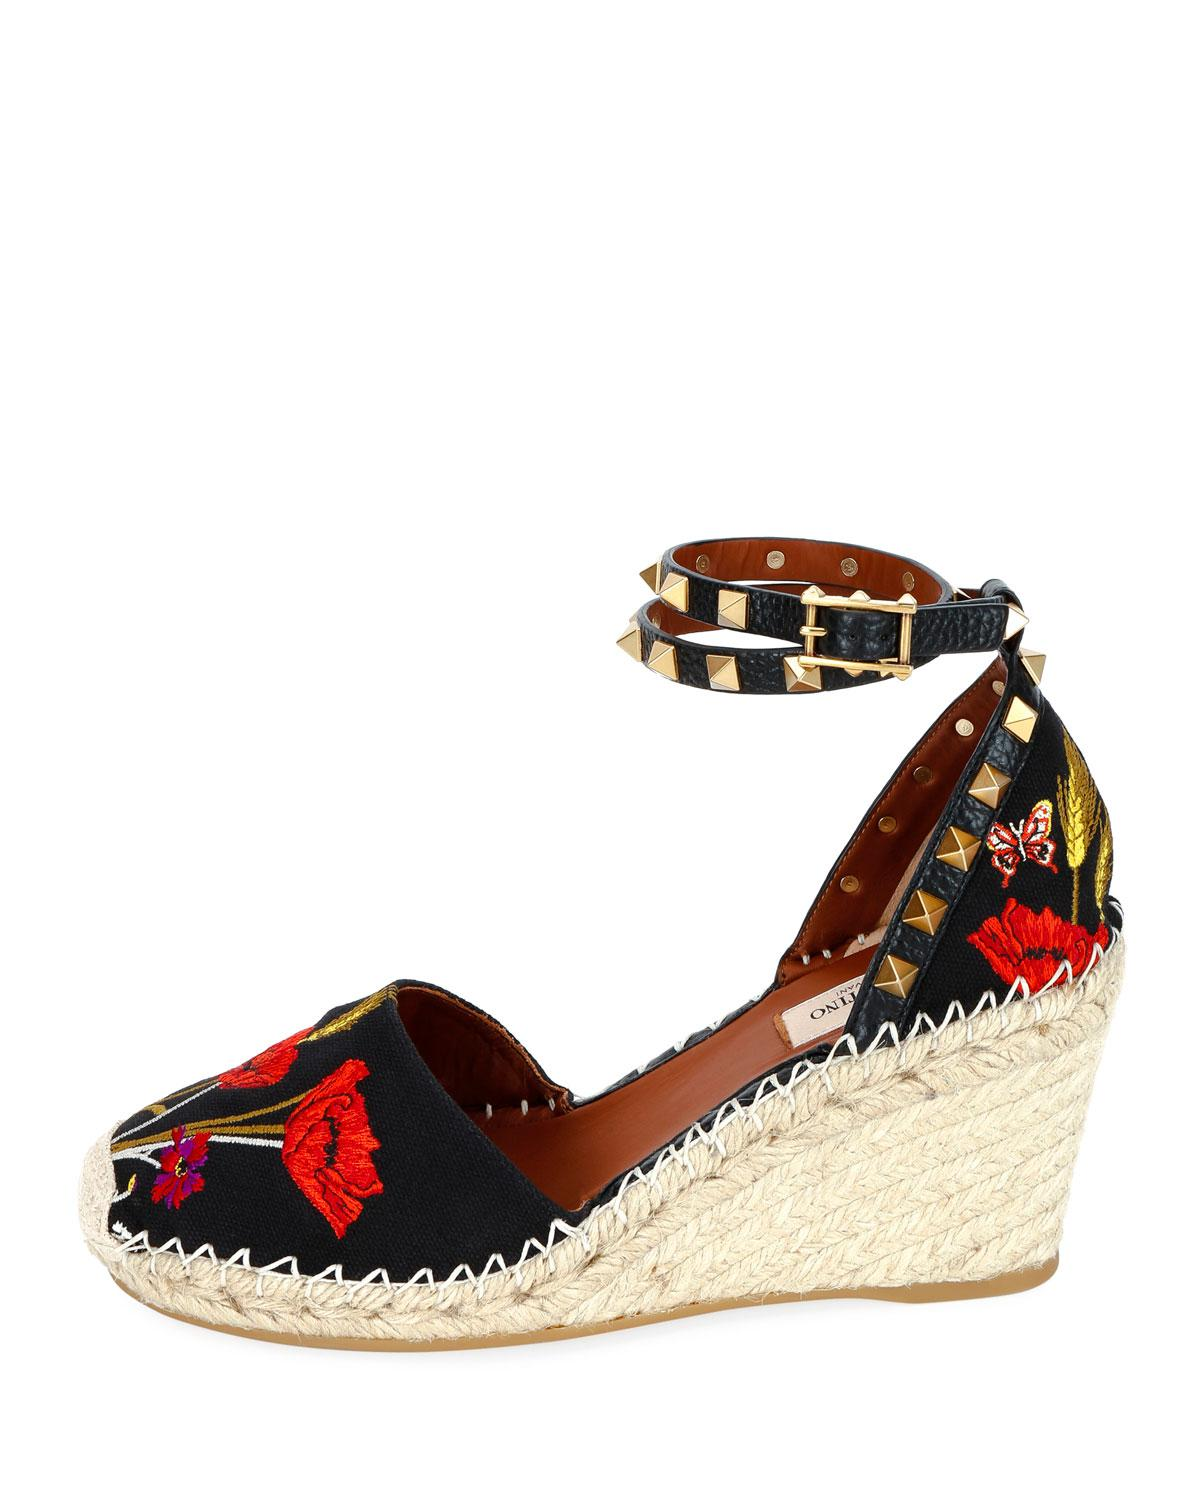 0f6aca178c97 Lyst - Valentino Rockstud Poppy Embroidered Wedge Espadrilles in Black